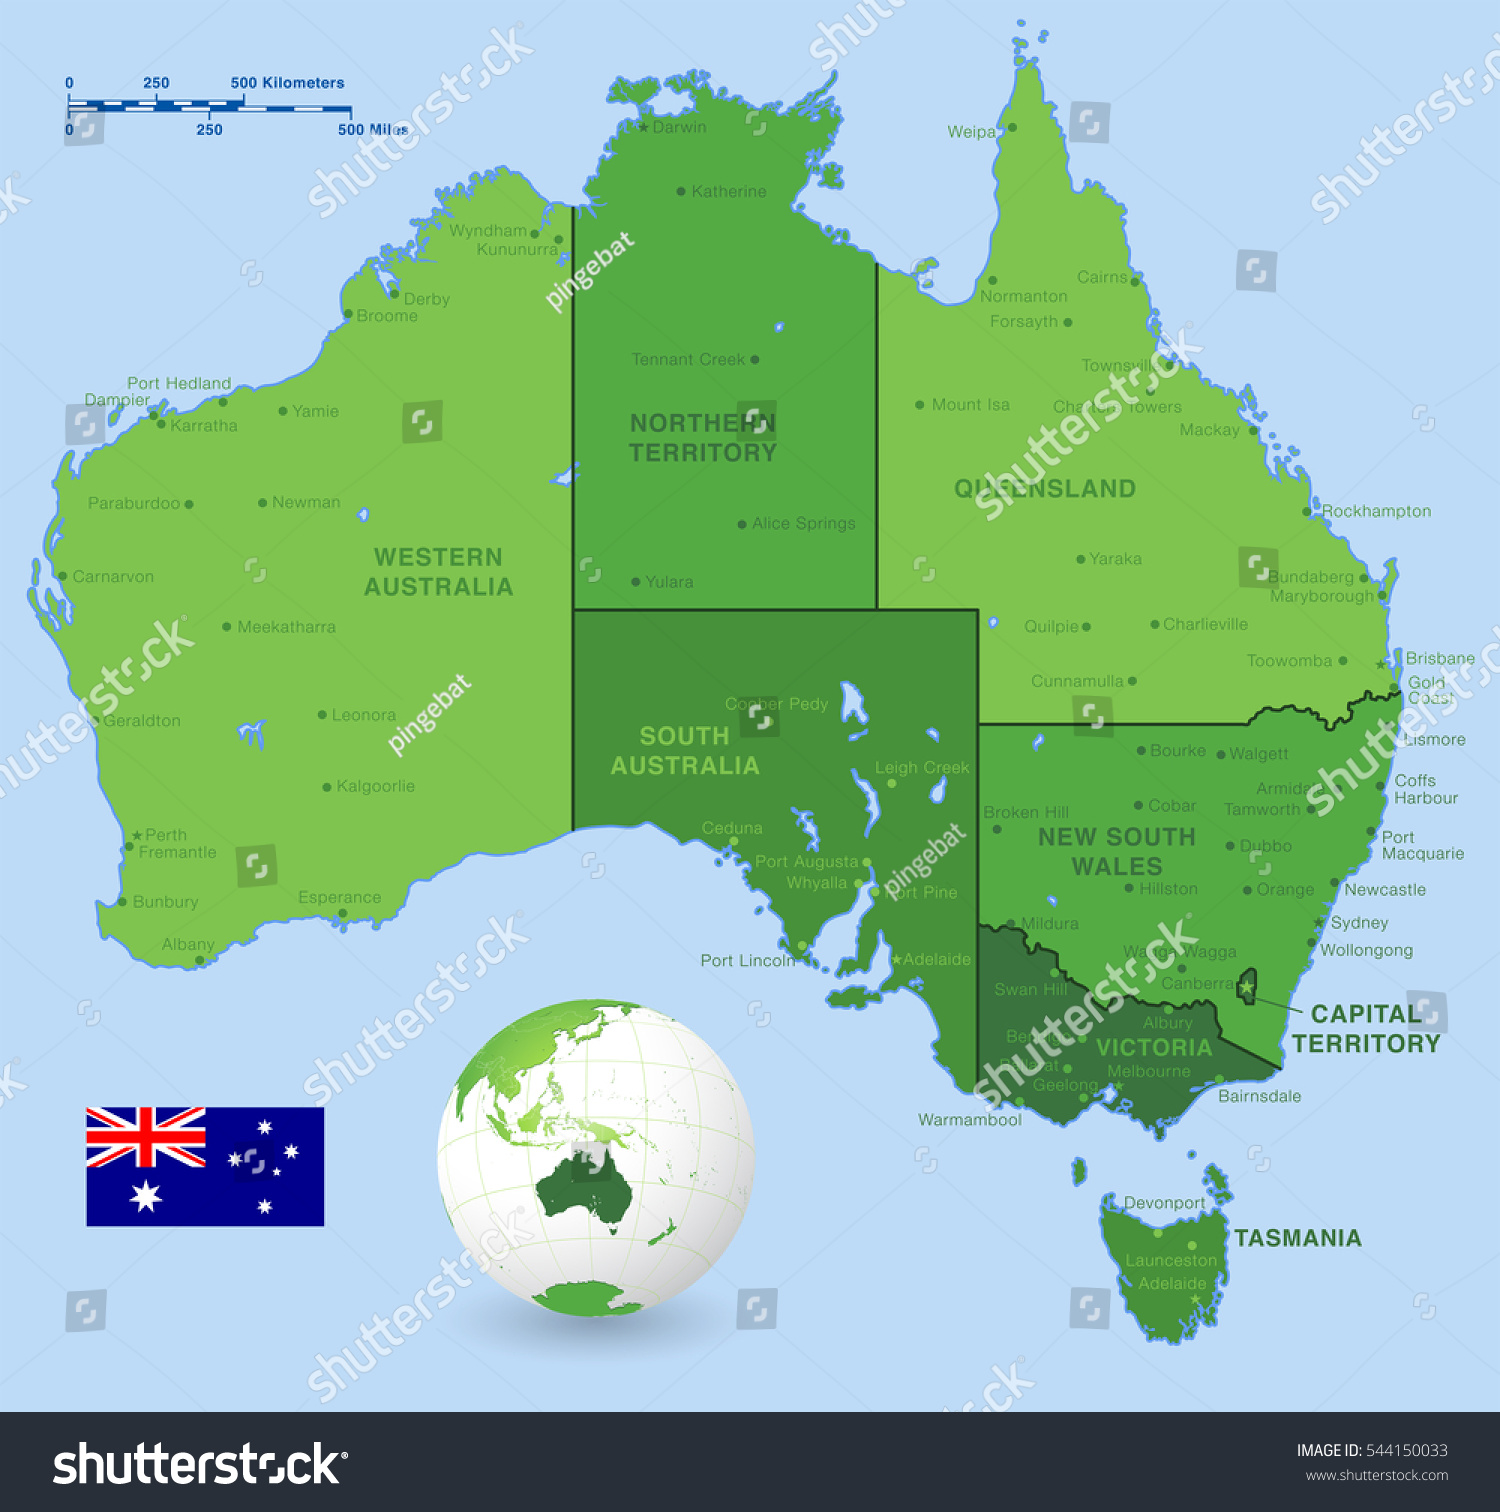 Maps Update 800670 Map of Australian Cities and States Cities – Map of Australia and Cities